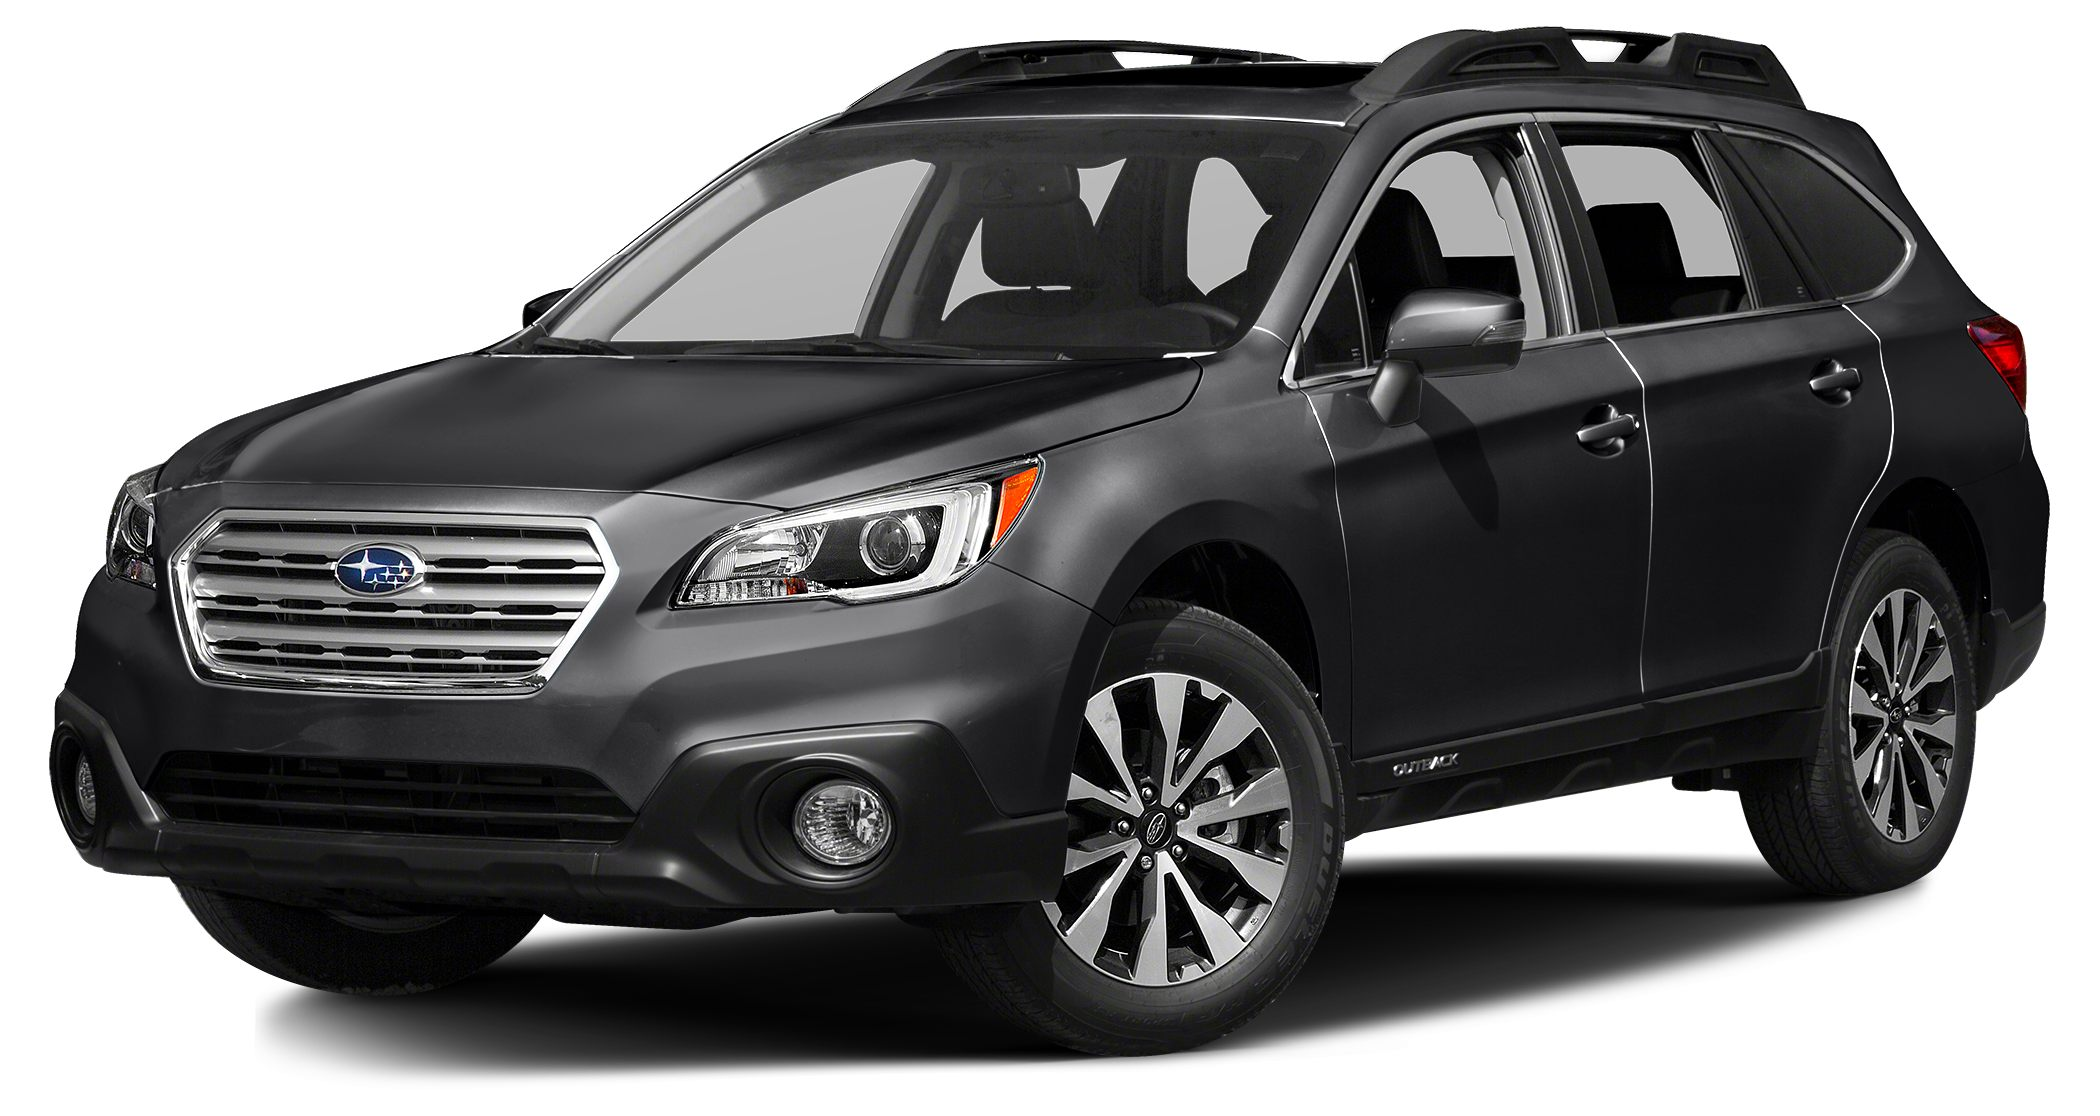 2016 Subaru Outback 36R Limited Recent Arrival CARFAX One-Owner Clean CARFAX Priced below KBB